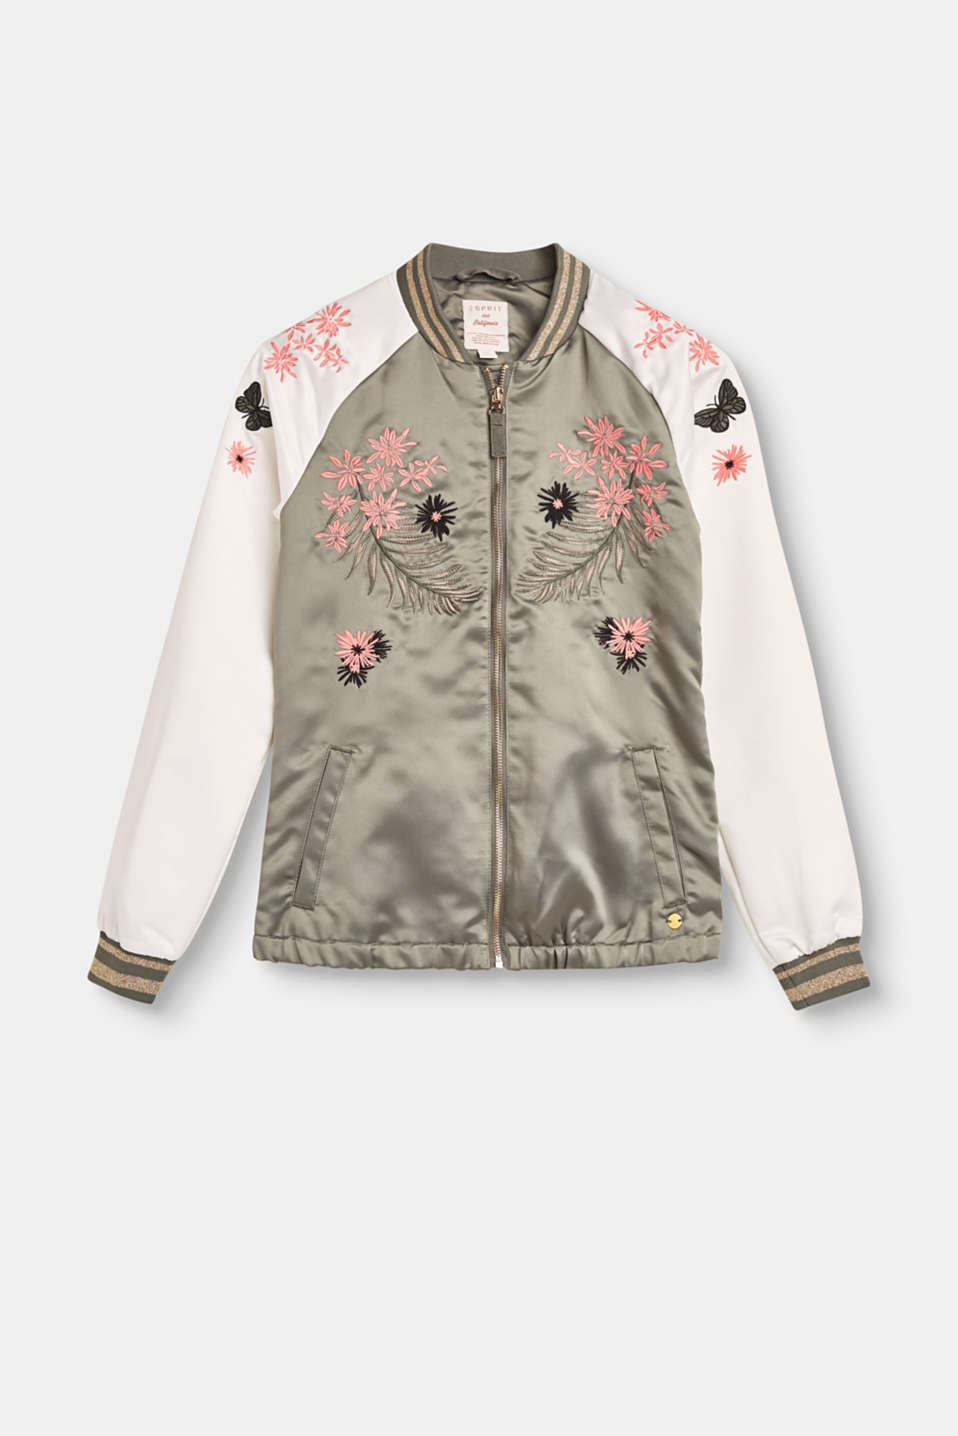 Esprit - Floral embroidery bomber jacket